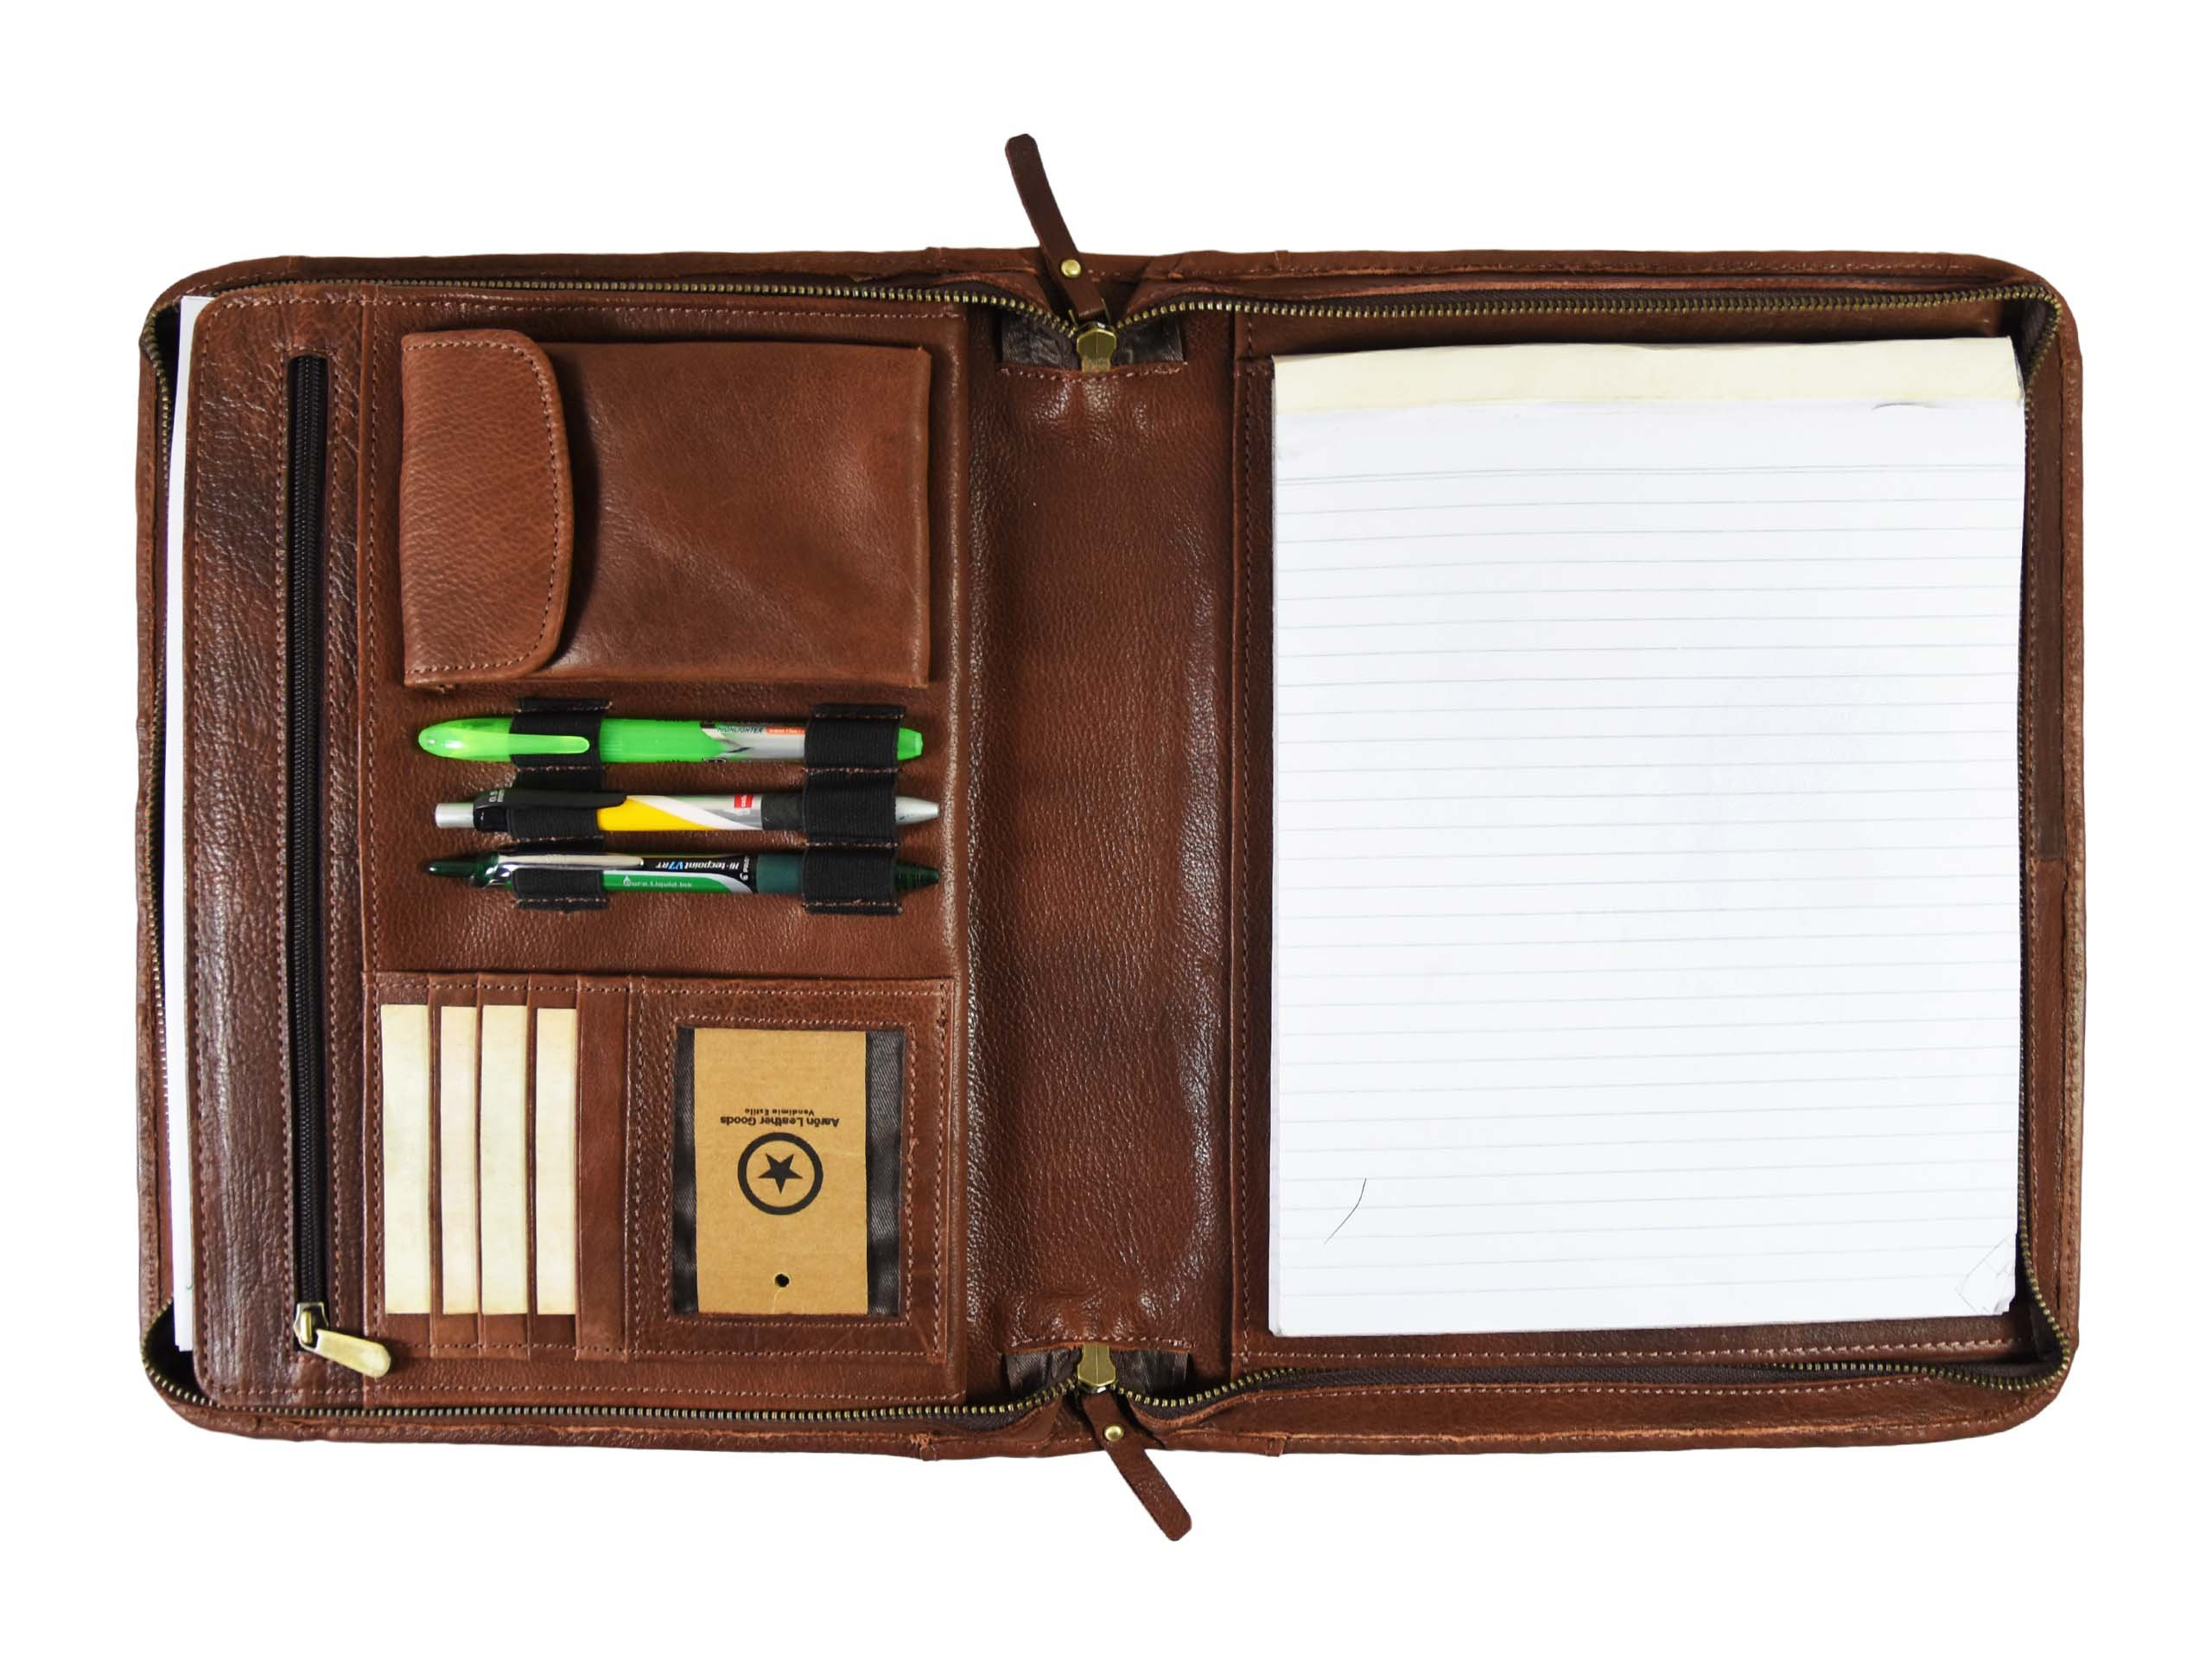 Premium Genuine Leather Business Portfolio and Professional Organizer, with a Zippered Closure,by Aaron Leather (Hickory Brown)